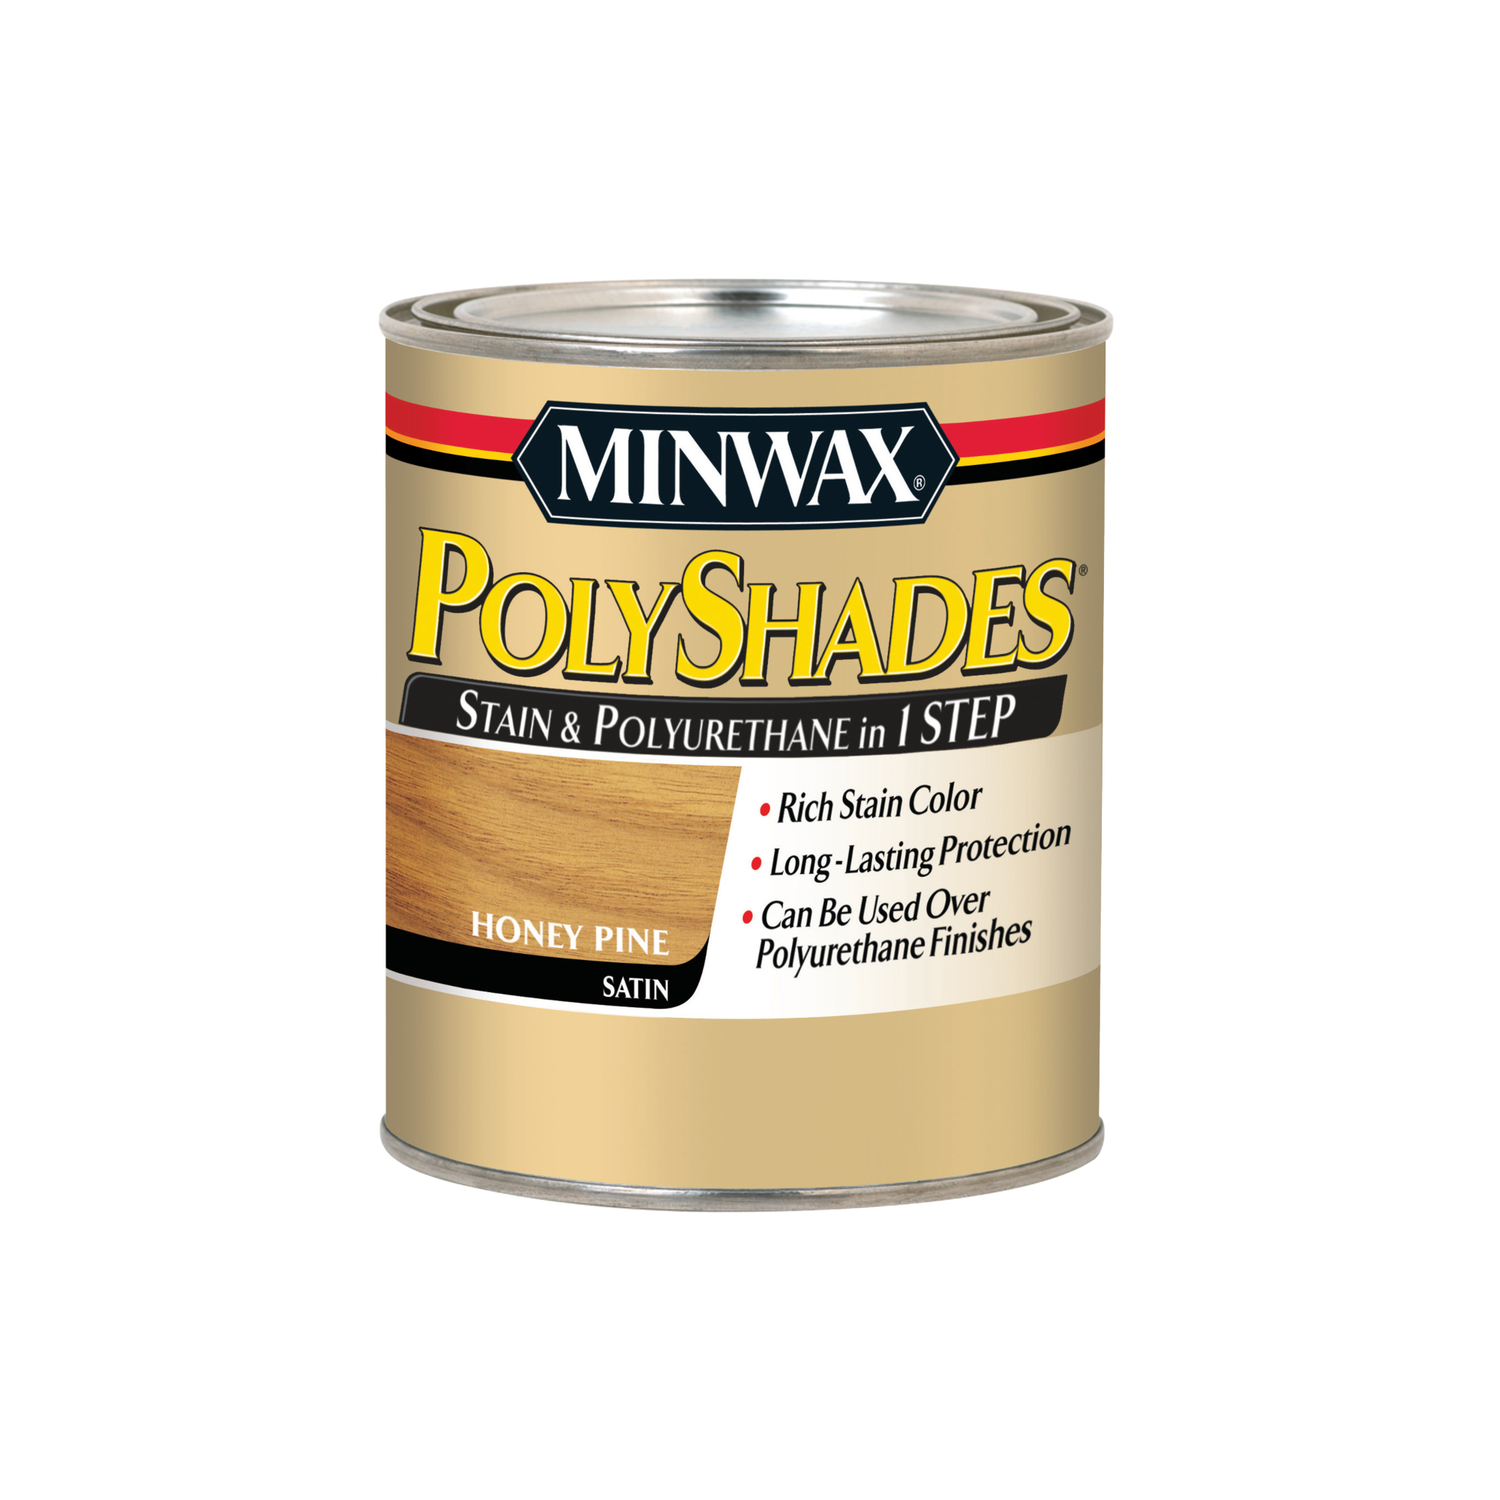 Minwax  PolyShades  Semi-Transparent  Satin  Honey Pine  Oil-Based  Polyurethane Stain  1 qt.